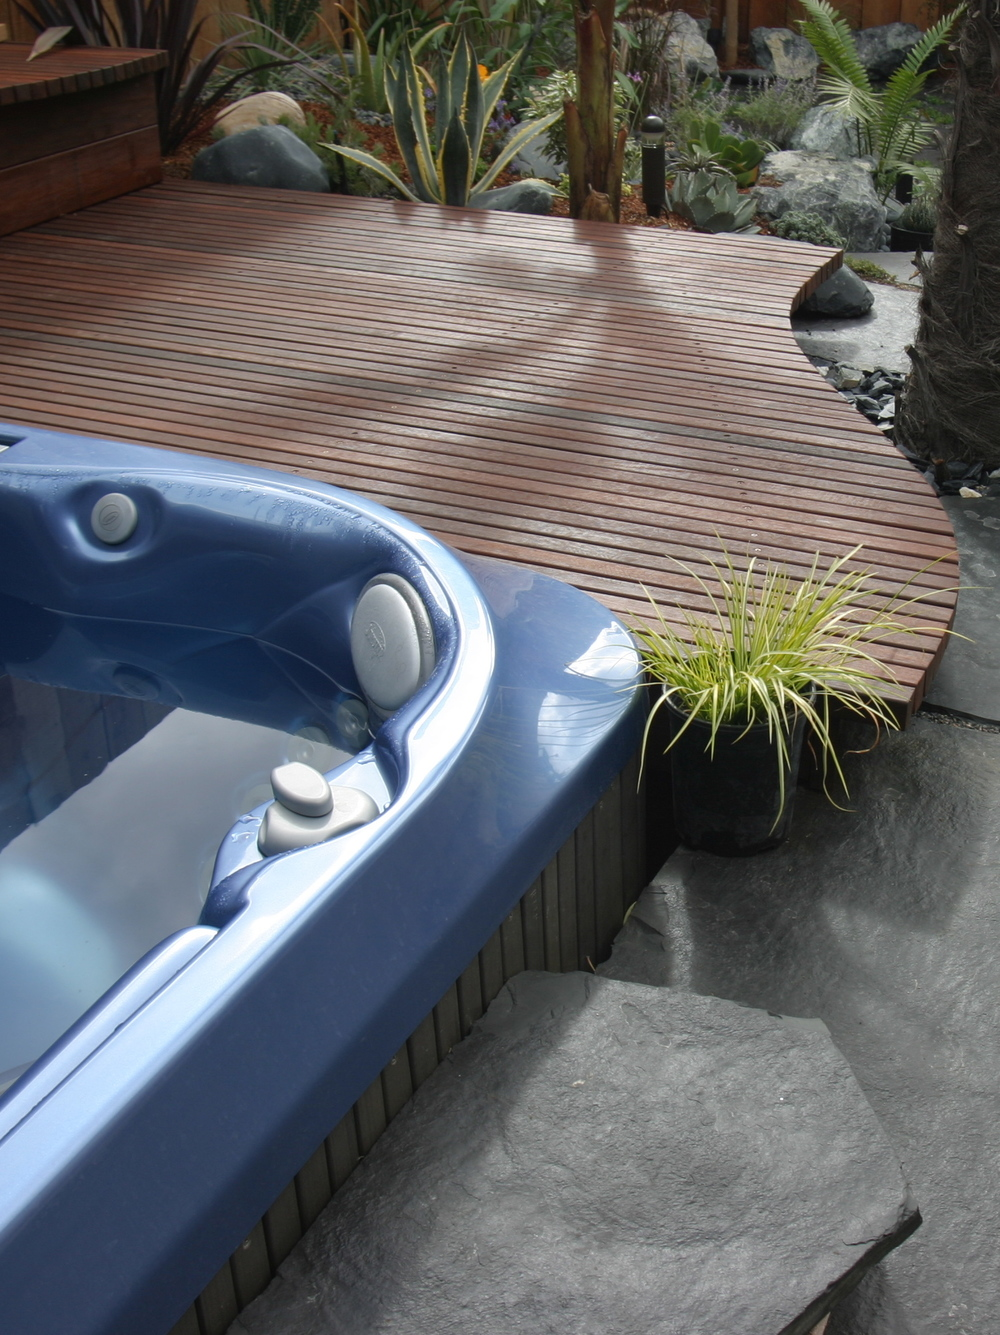 We Typically Design Our Hot Tub Features Somewhat Sunken In The Ground For  A Lower Profile. We Typically Design And Build A Small Wood Platform Next  To The ...